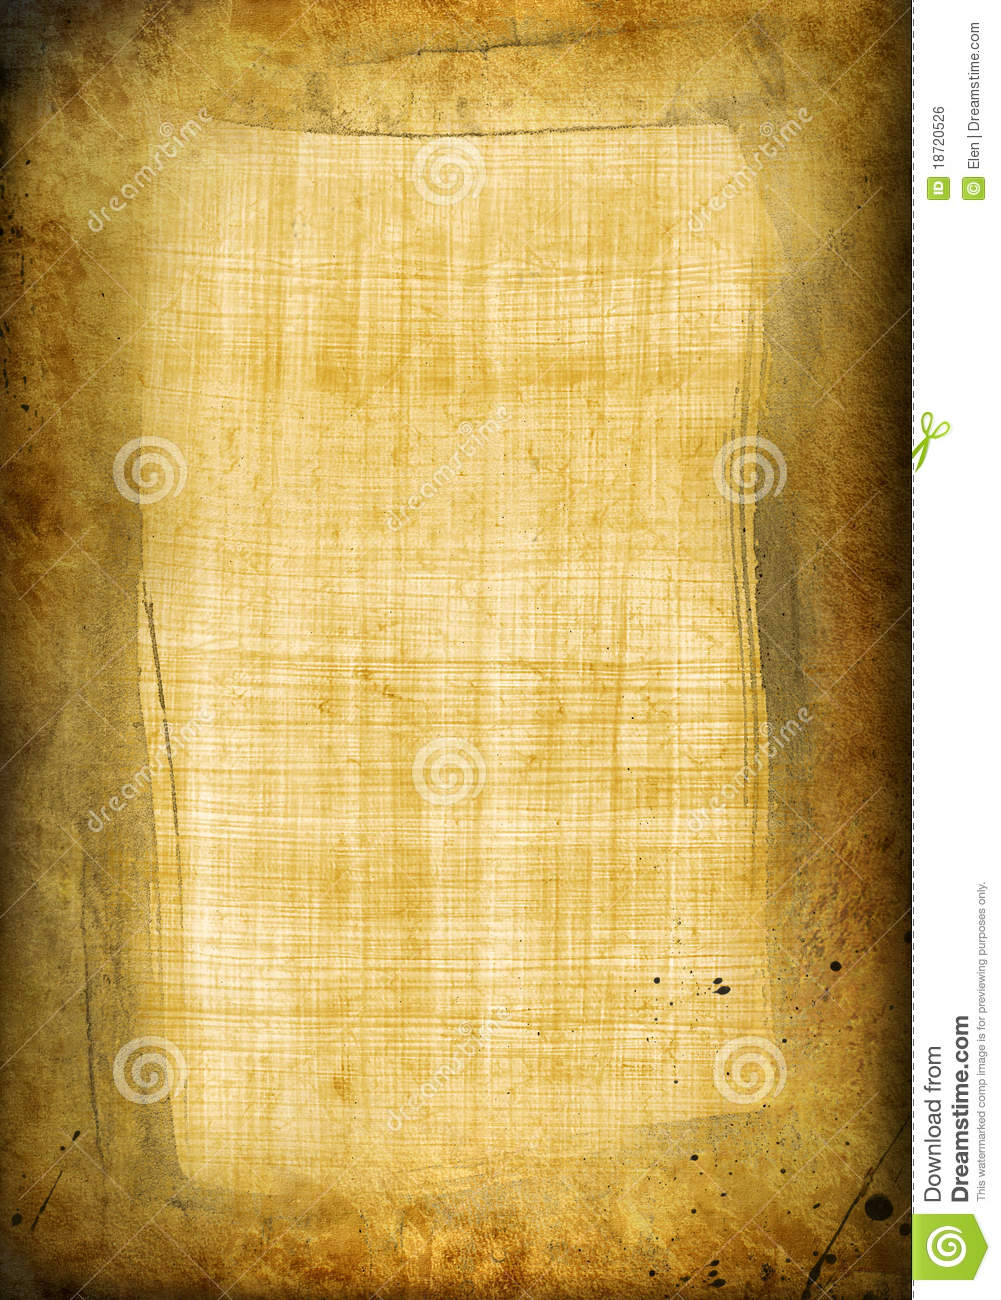 Old papyrus with frame stock illustration. Illustration of structure ...